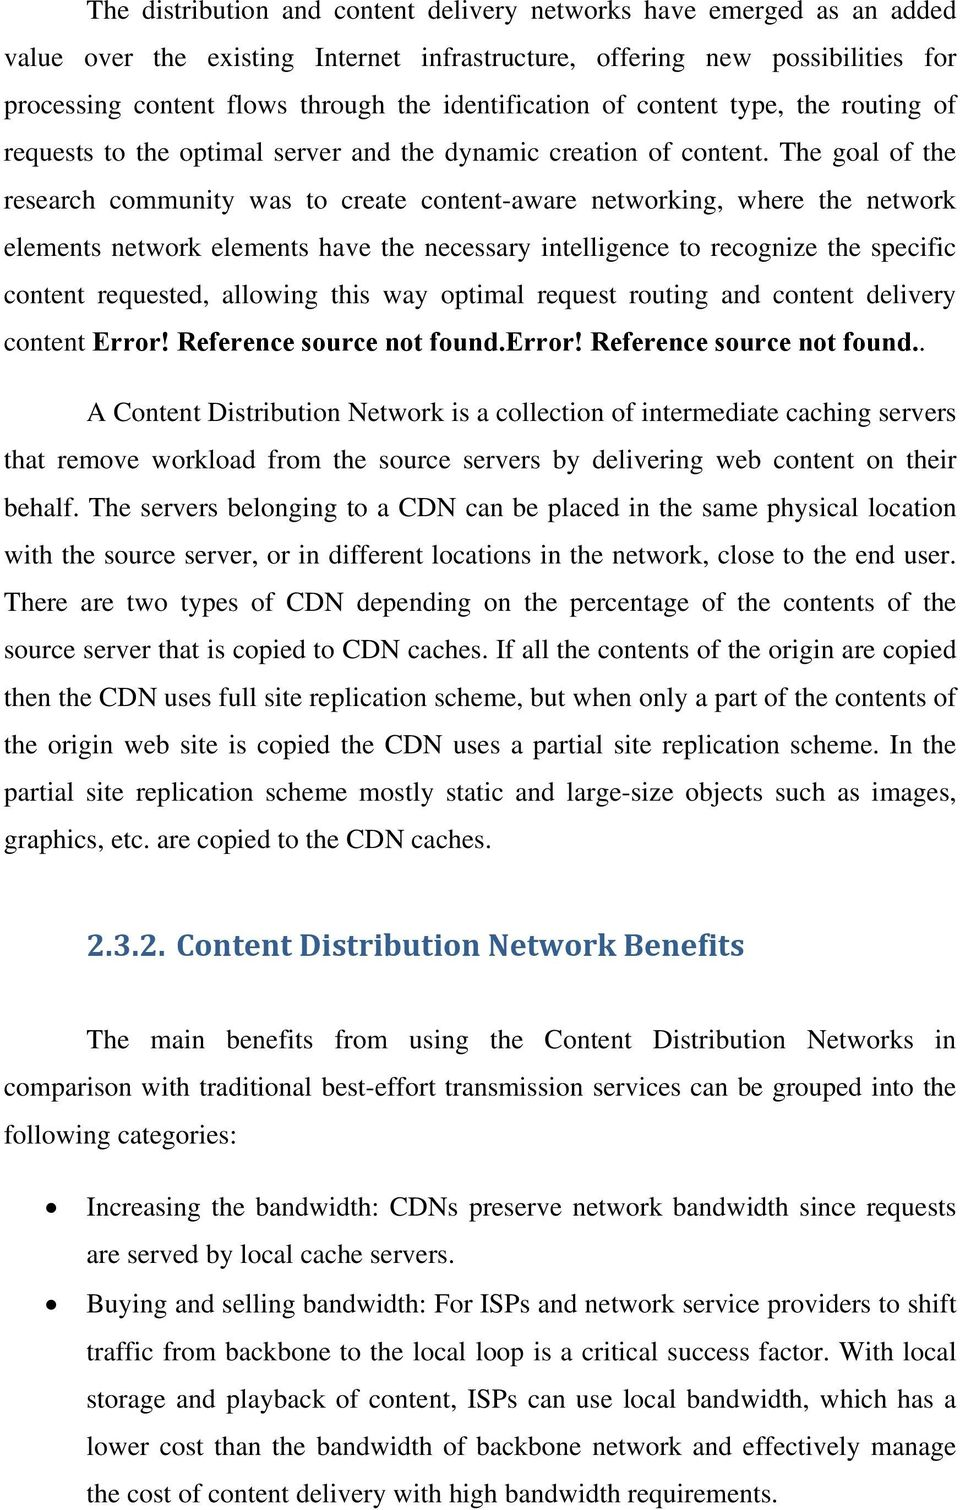 The goal of the research community was to create content-aware networking, where the network elements network elements have the necessary intelligence to recognize the specific content requested,